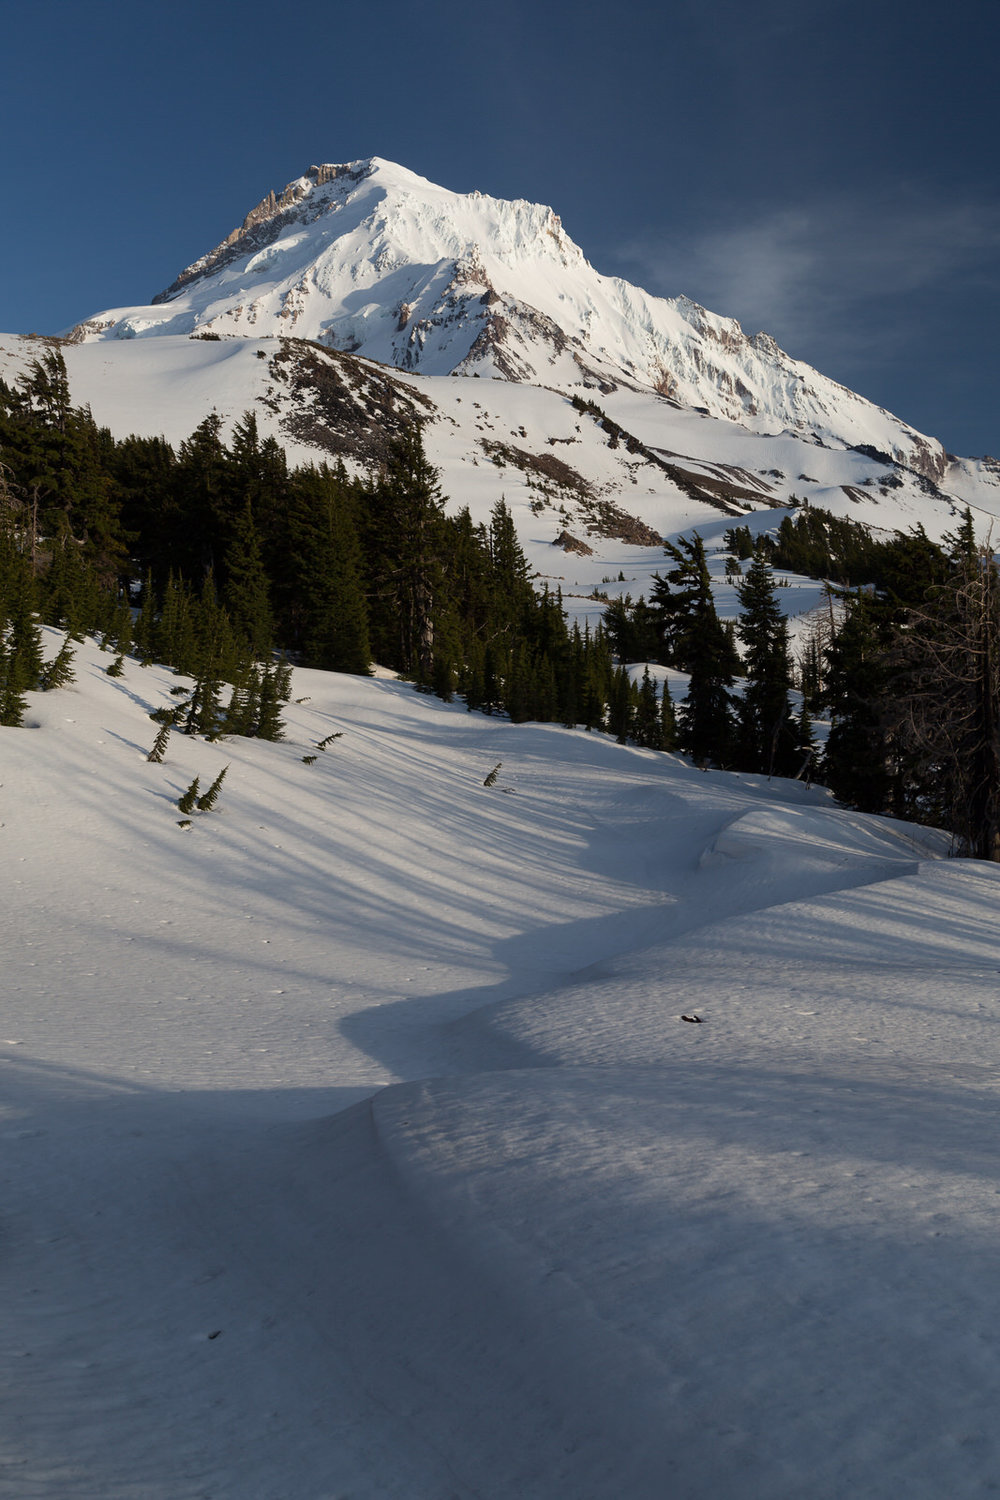 Leading lines in the snow drifts on Vista Ridge below Mt. Hood